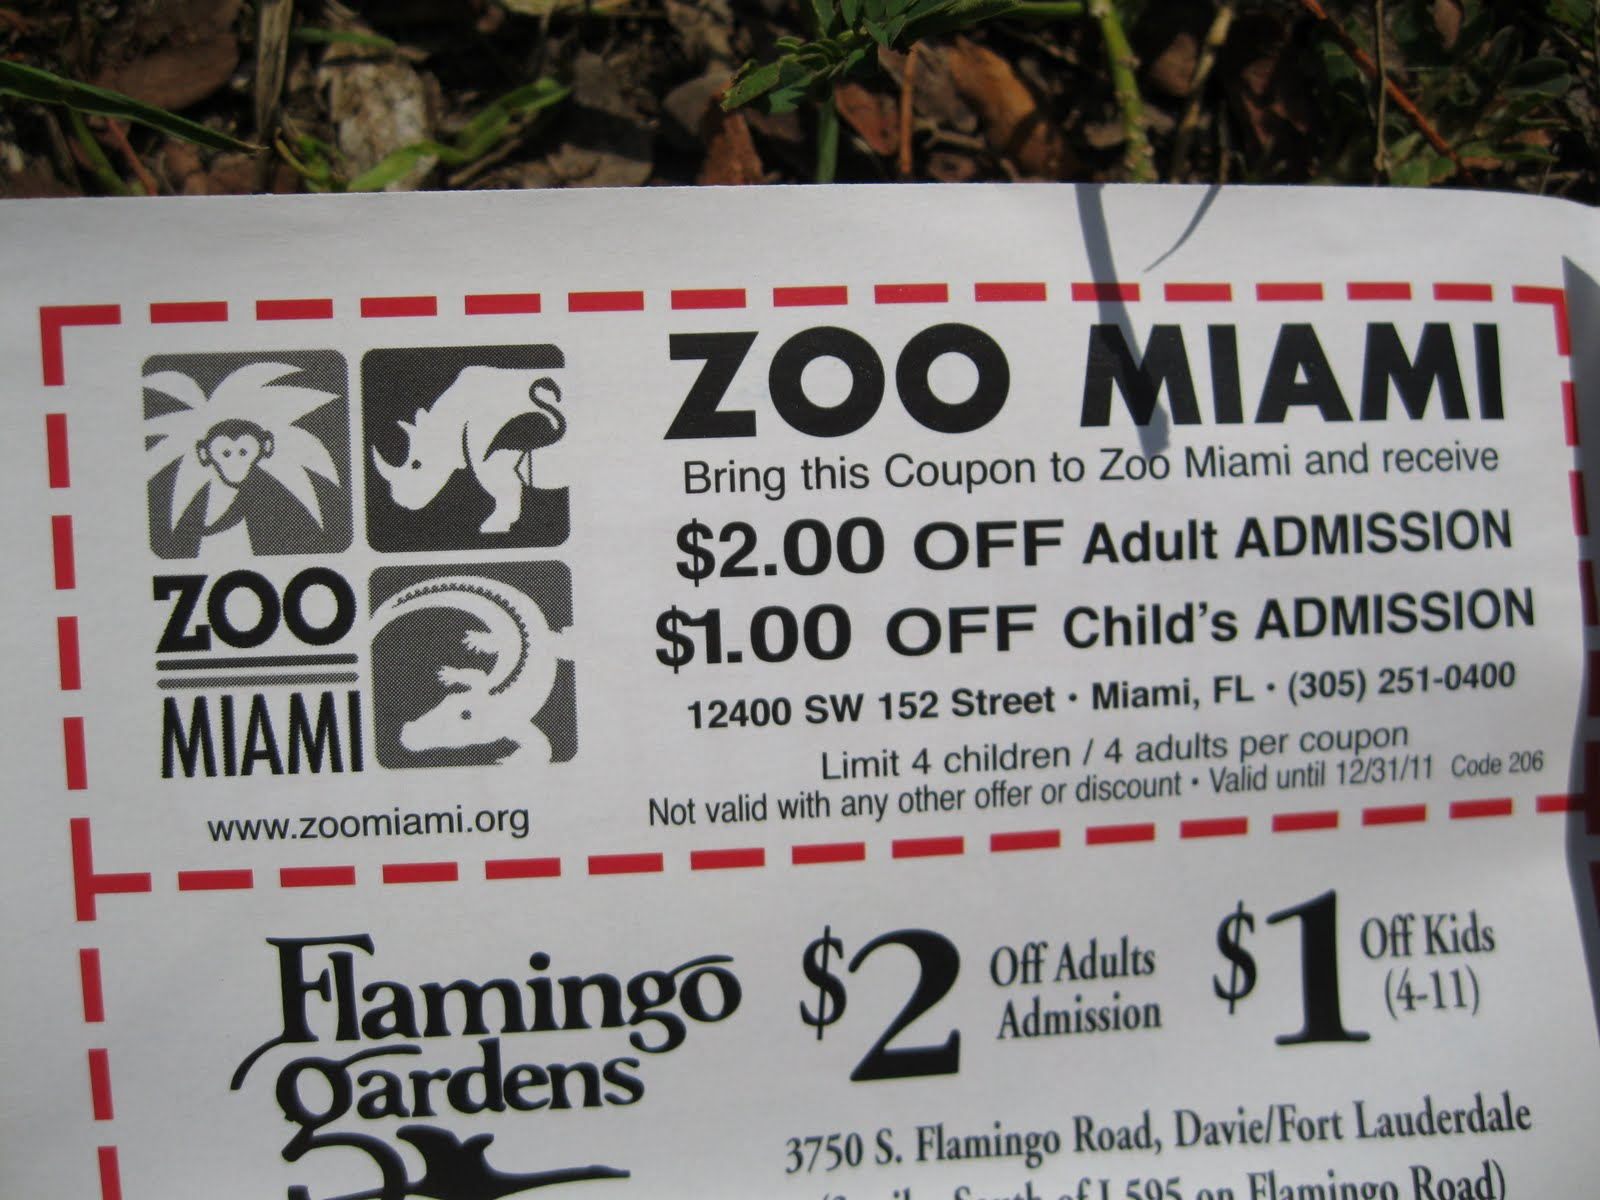 Toronto Zoo Coupons The Toronto Zoo has hundreds of exotic animals from around the world in outdoor and indoor exhibits all year round. Get free admission and discounts on their gift shop with the deals and coupons we list on this page.